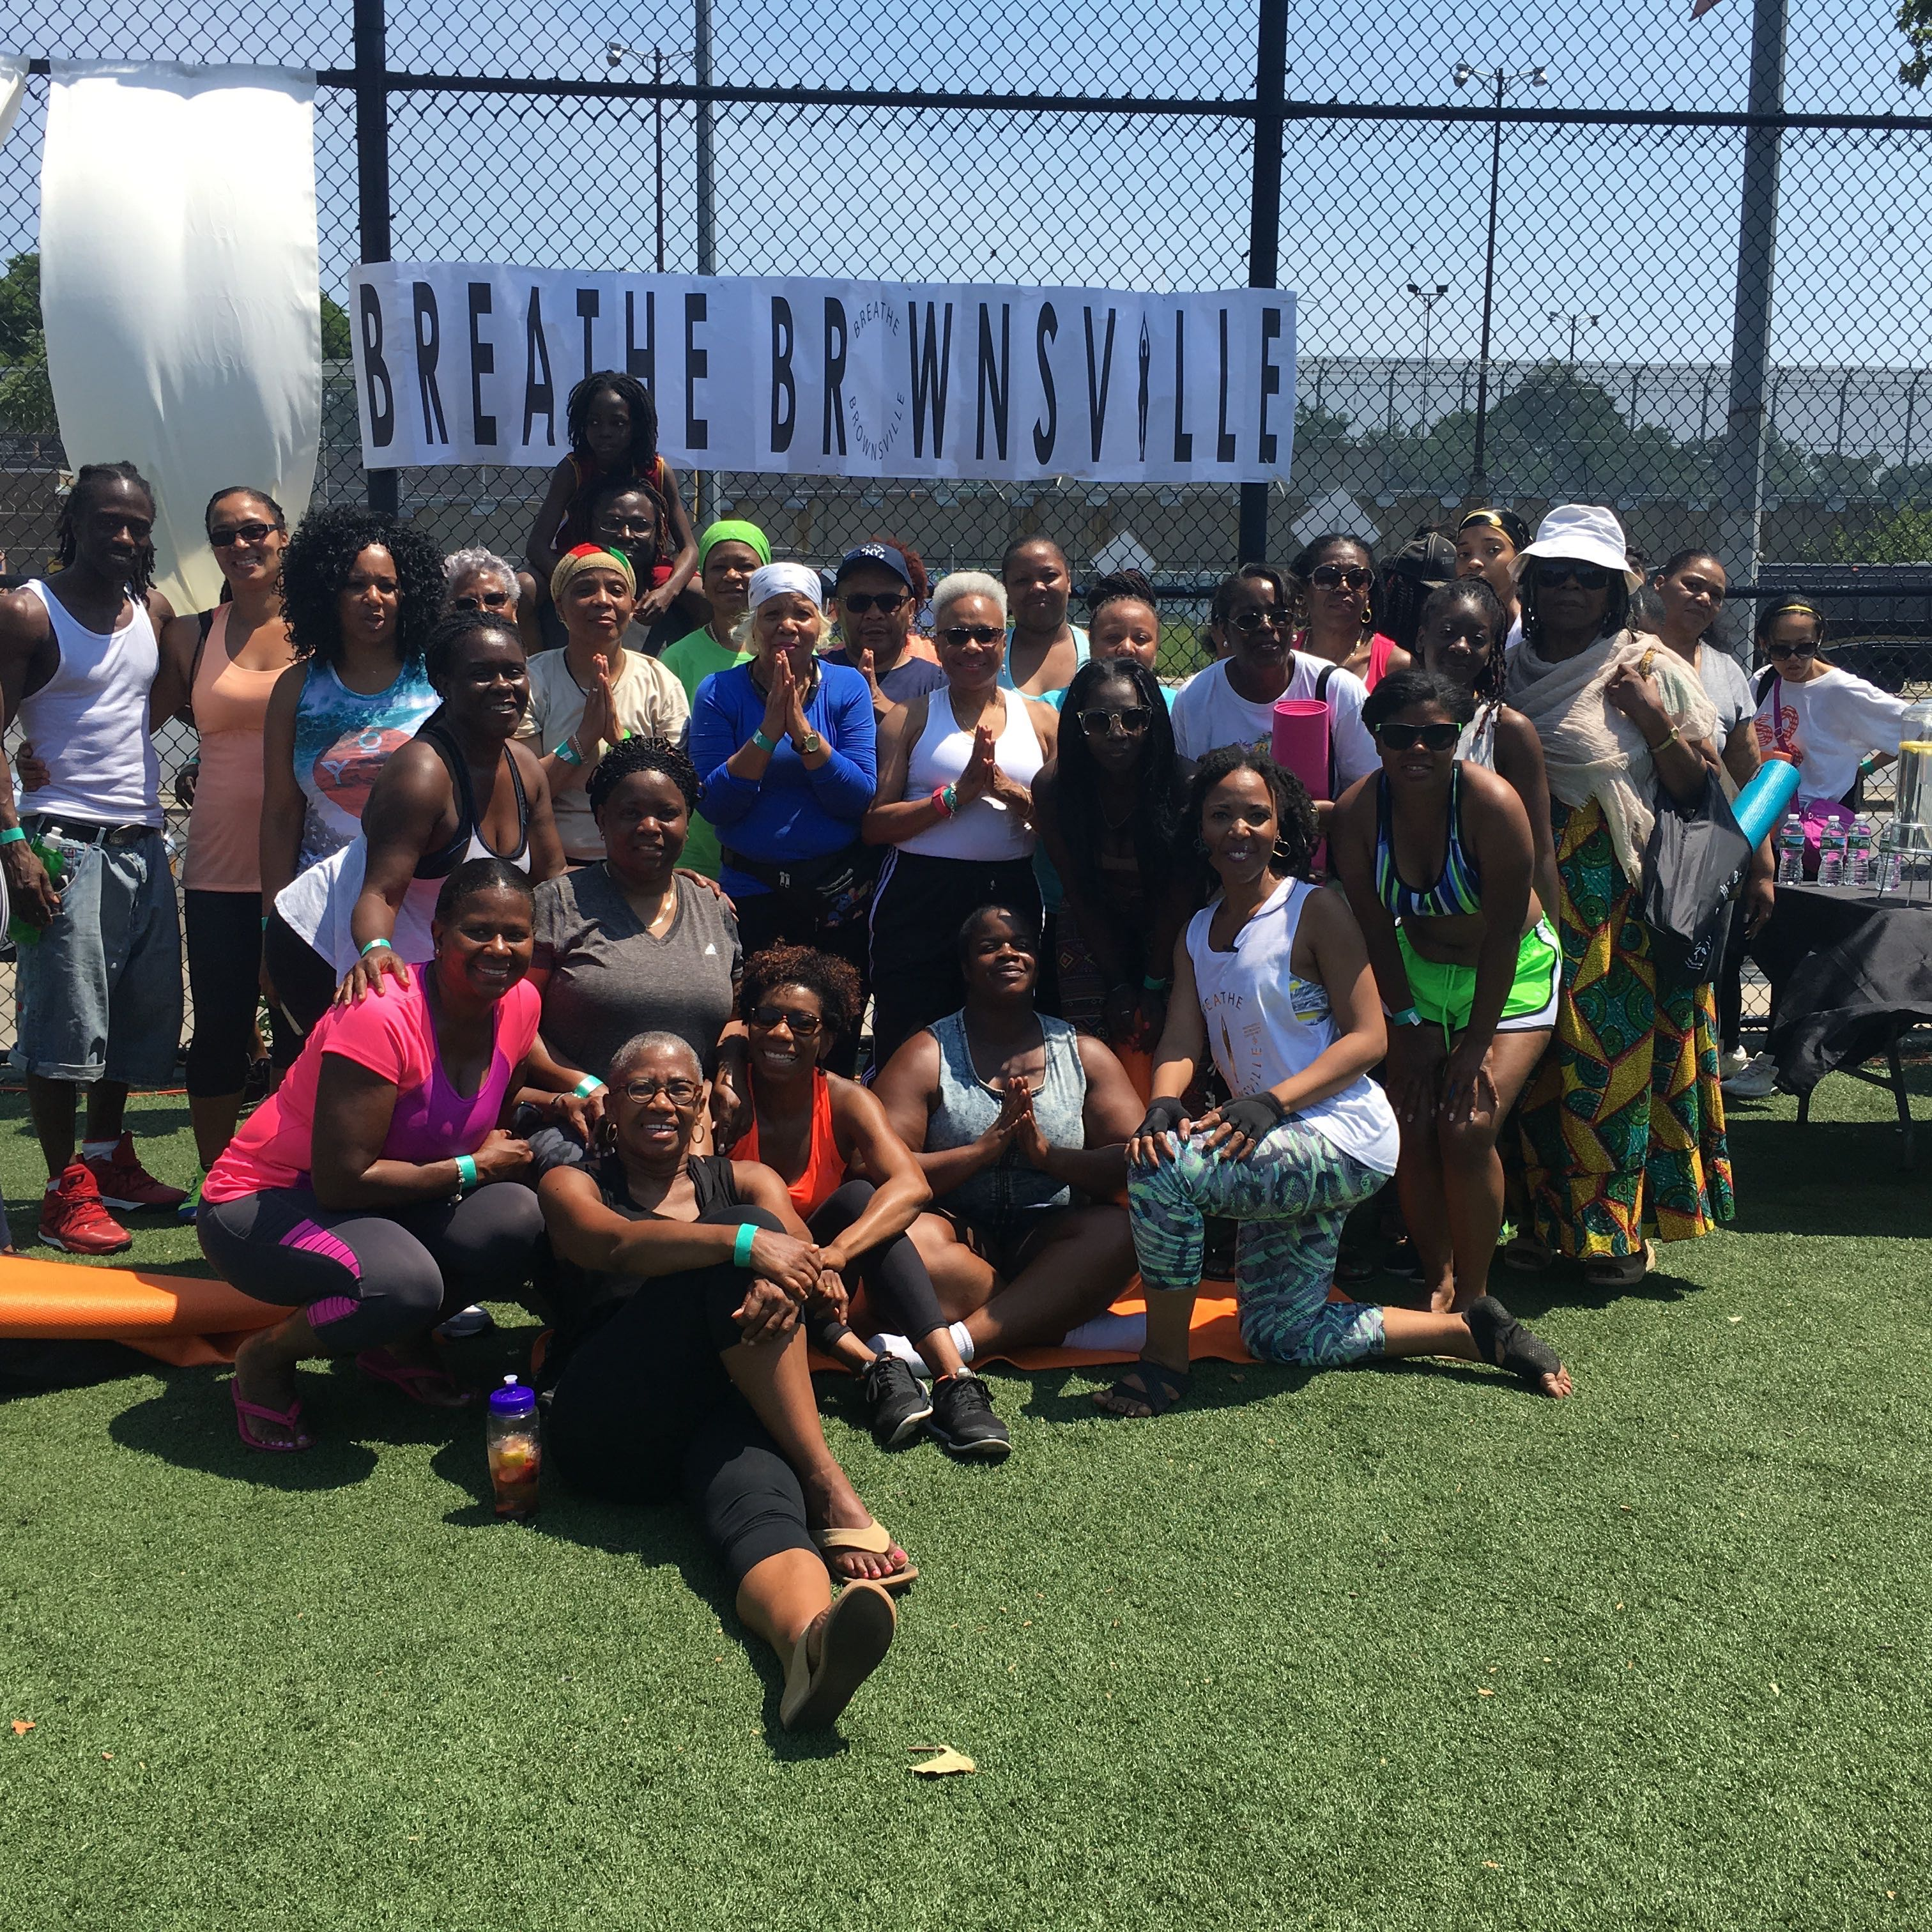 Group pic # 2 - Breathe Brownsville Brooklyn Yoga Festival